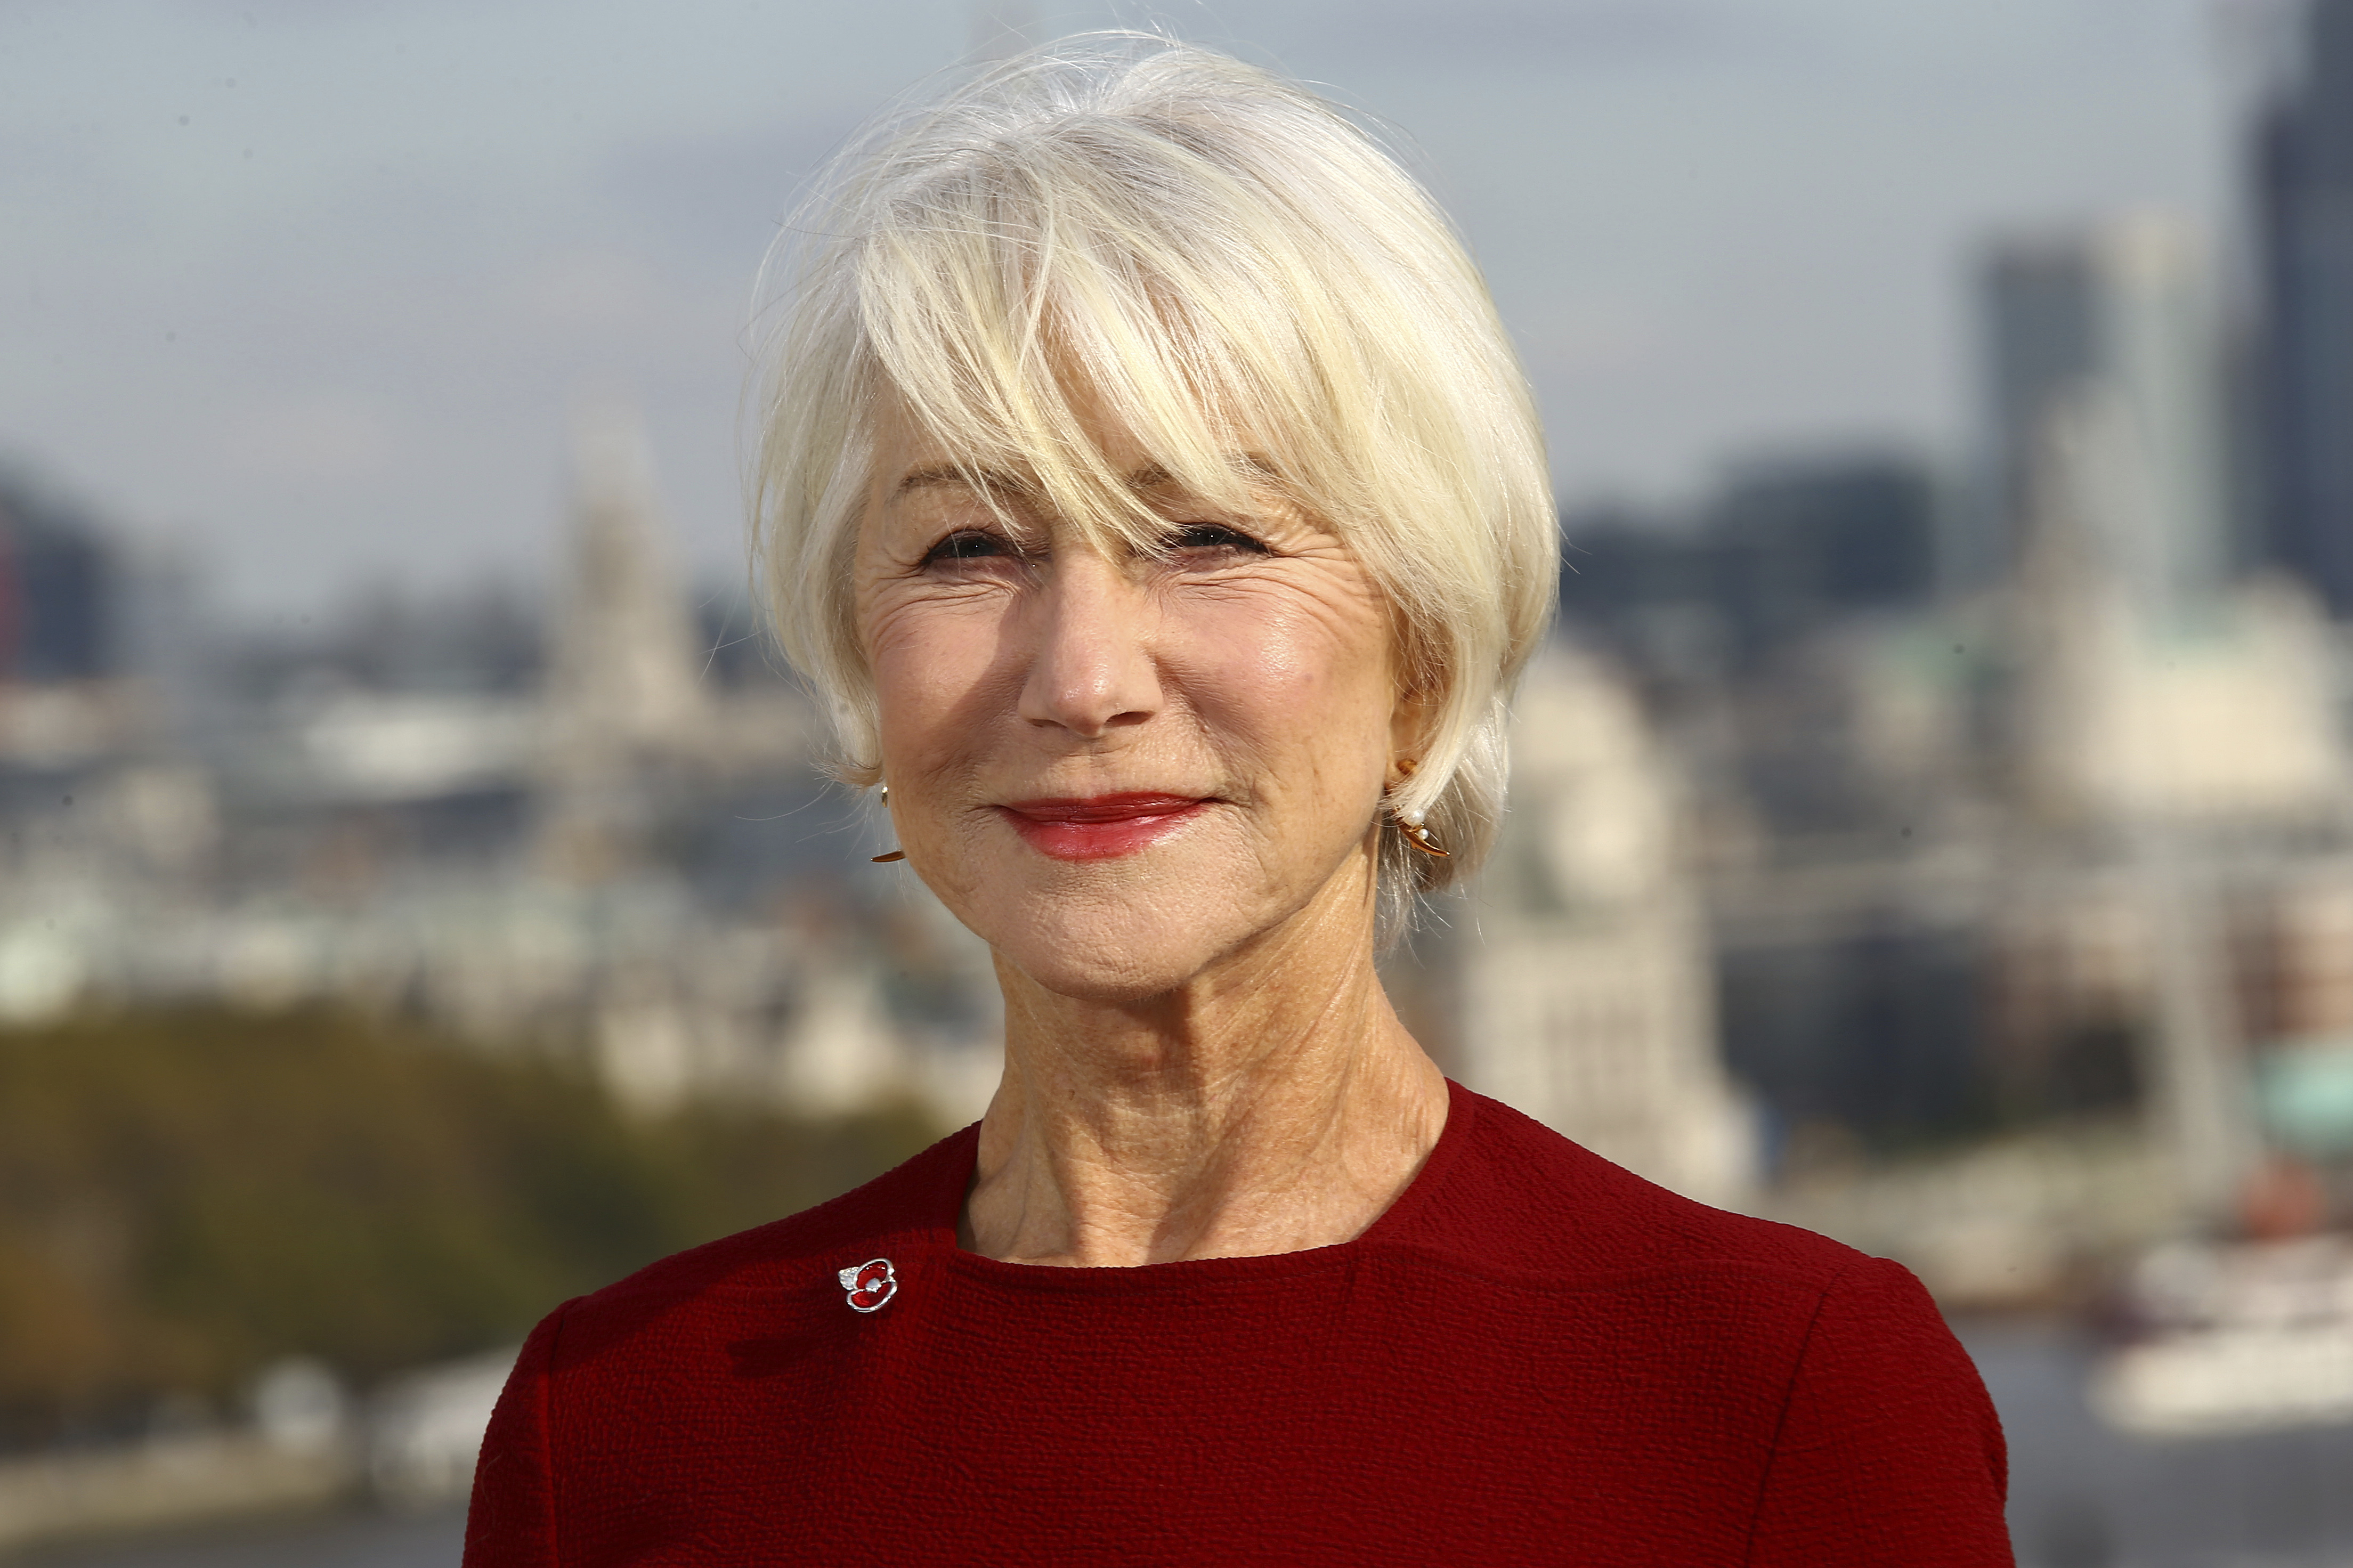 Actress Dame Helen Mirren poses for photographers at the photo call for the film 'The Good Liar' at a central London hotel, Wednesday, Oct. 30, 2019. (Photo by Joel C Ryan/Invision/AP)